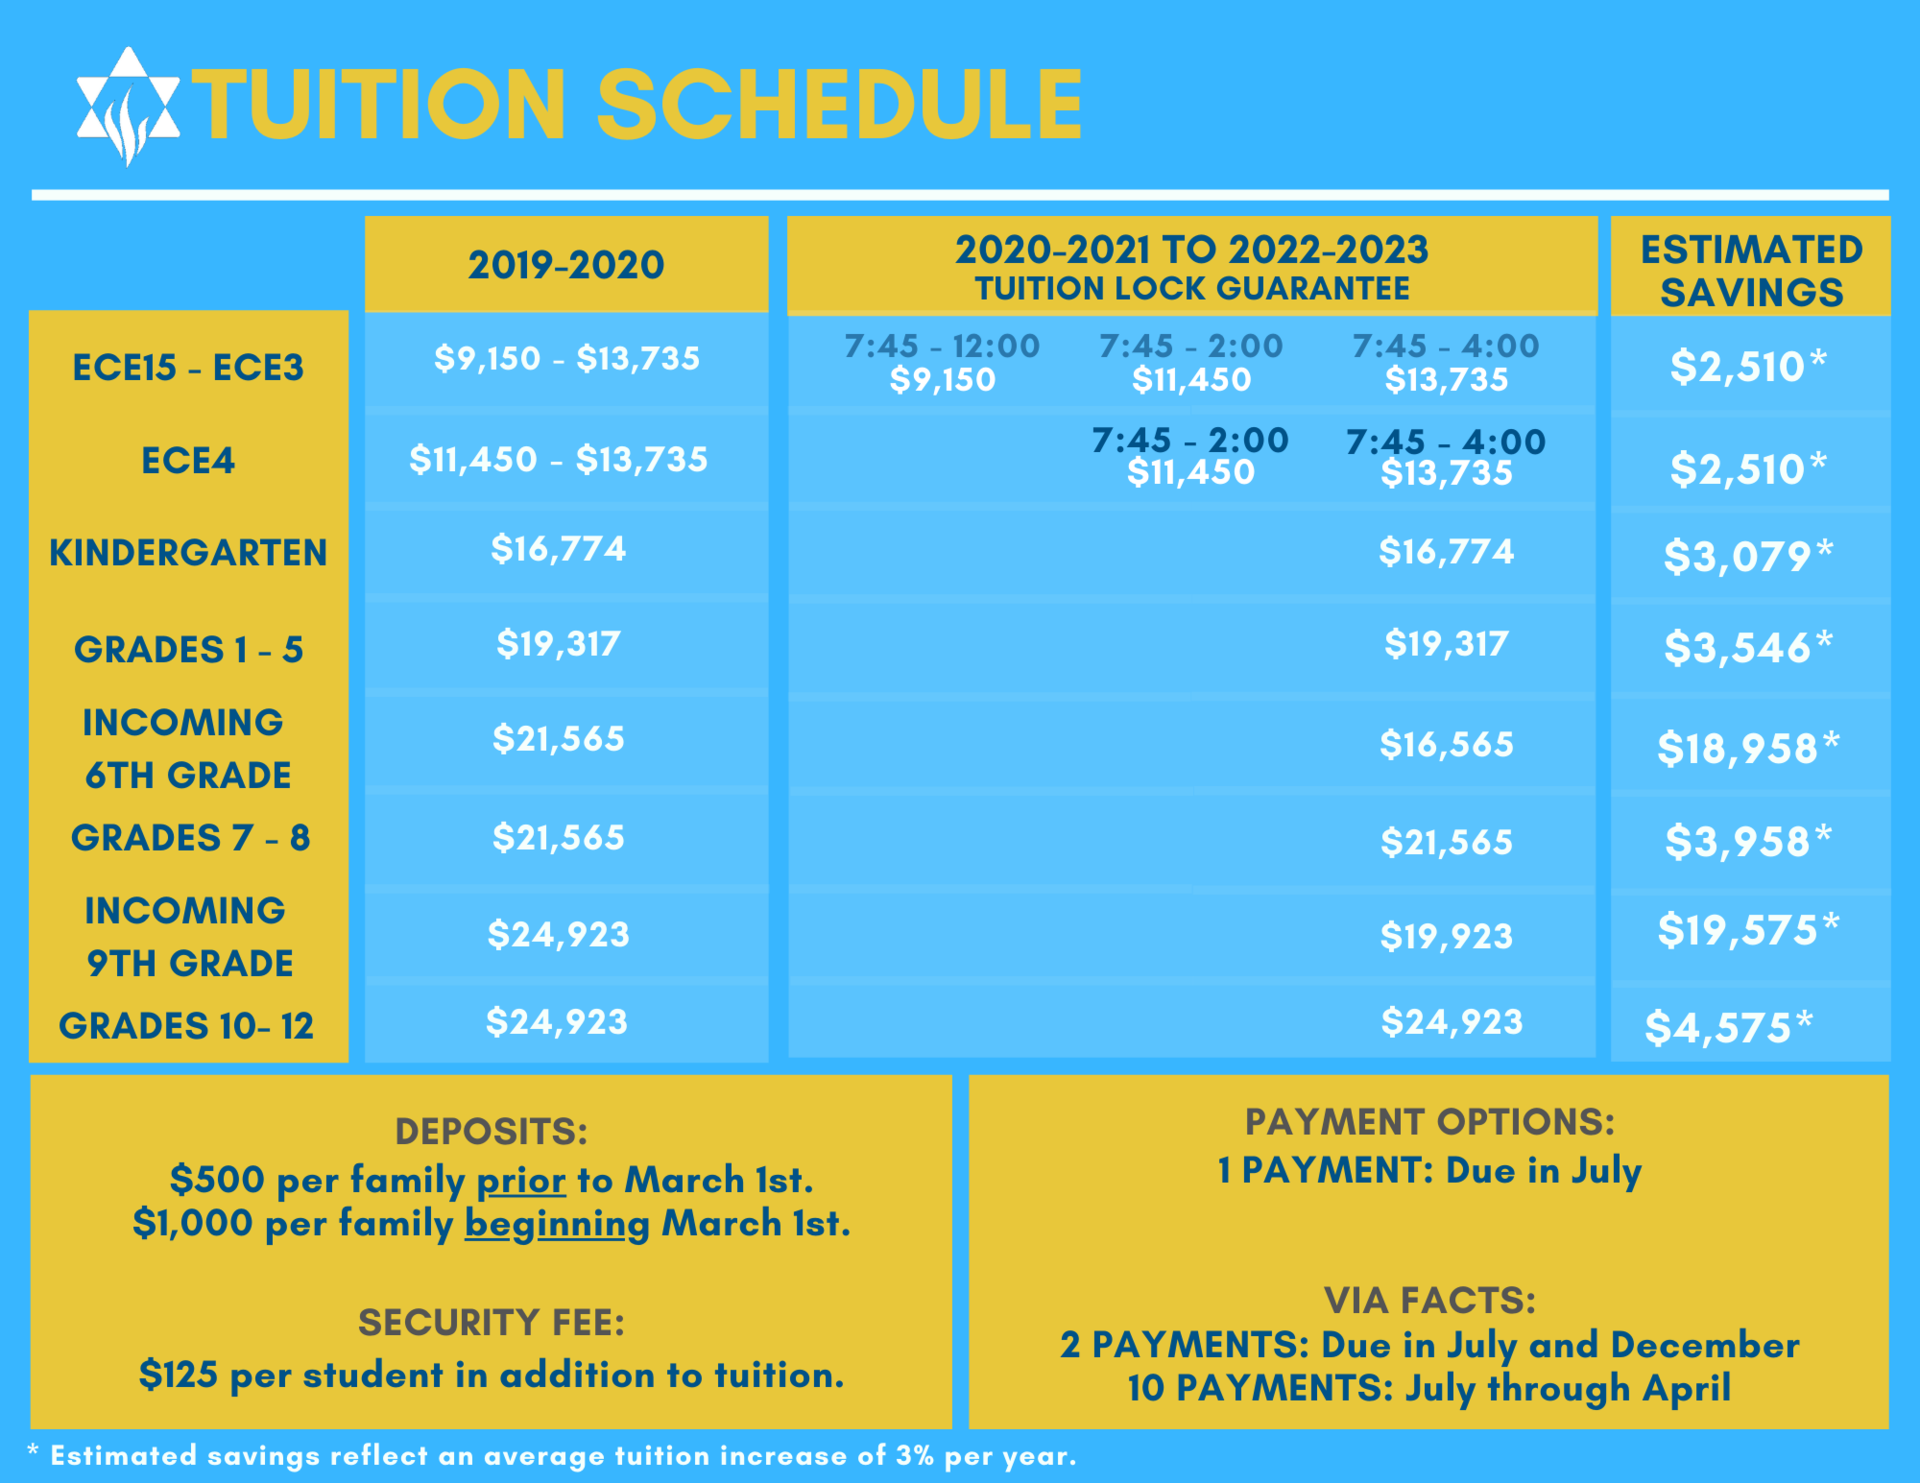 Tuition Schedule